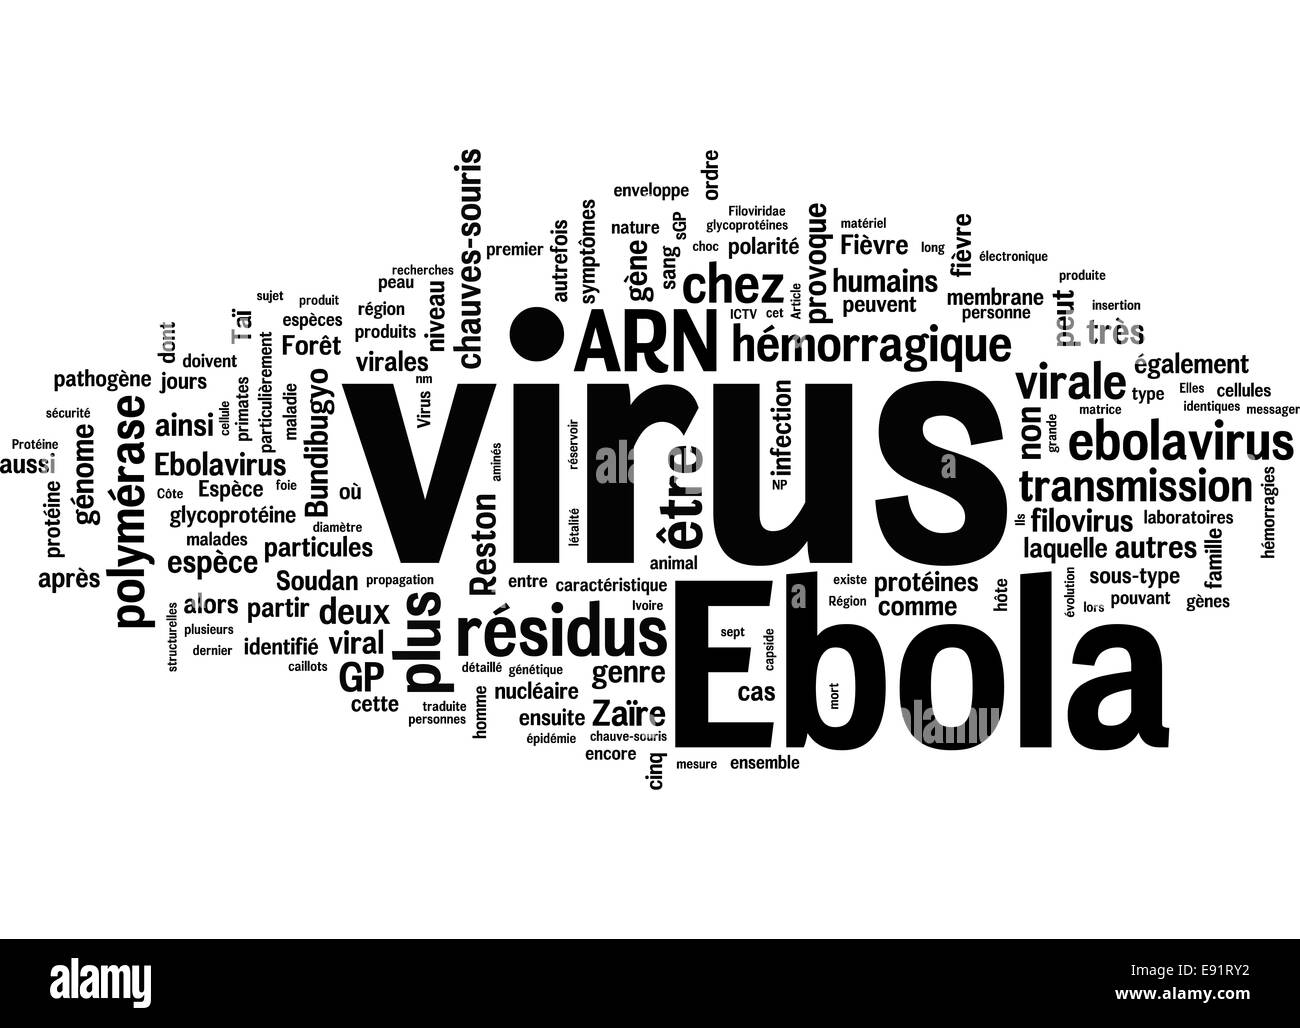 Ebola virus related concepts - Stock Image